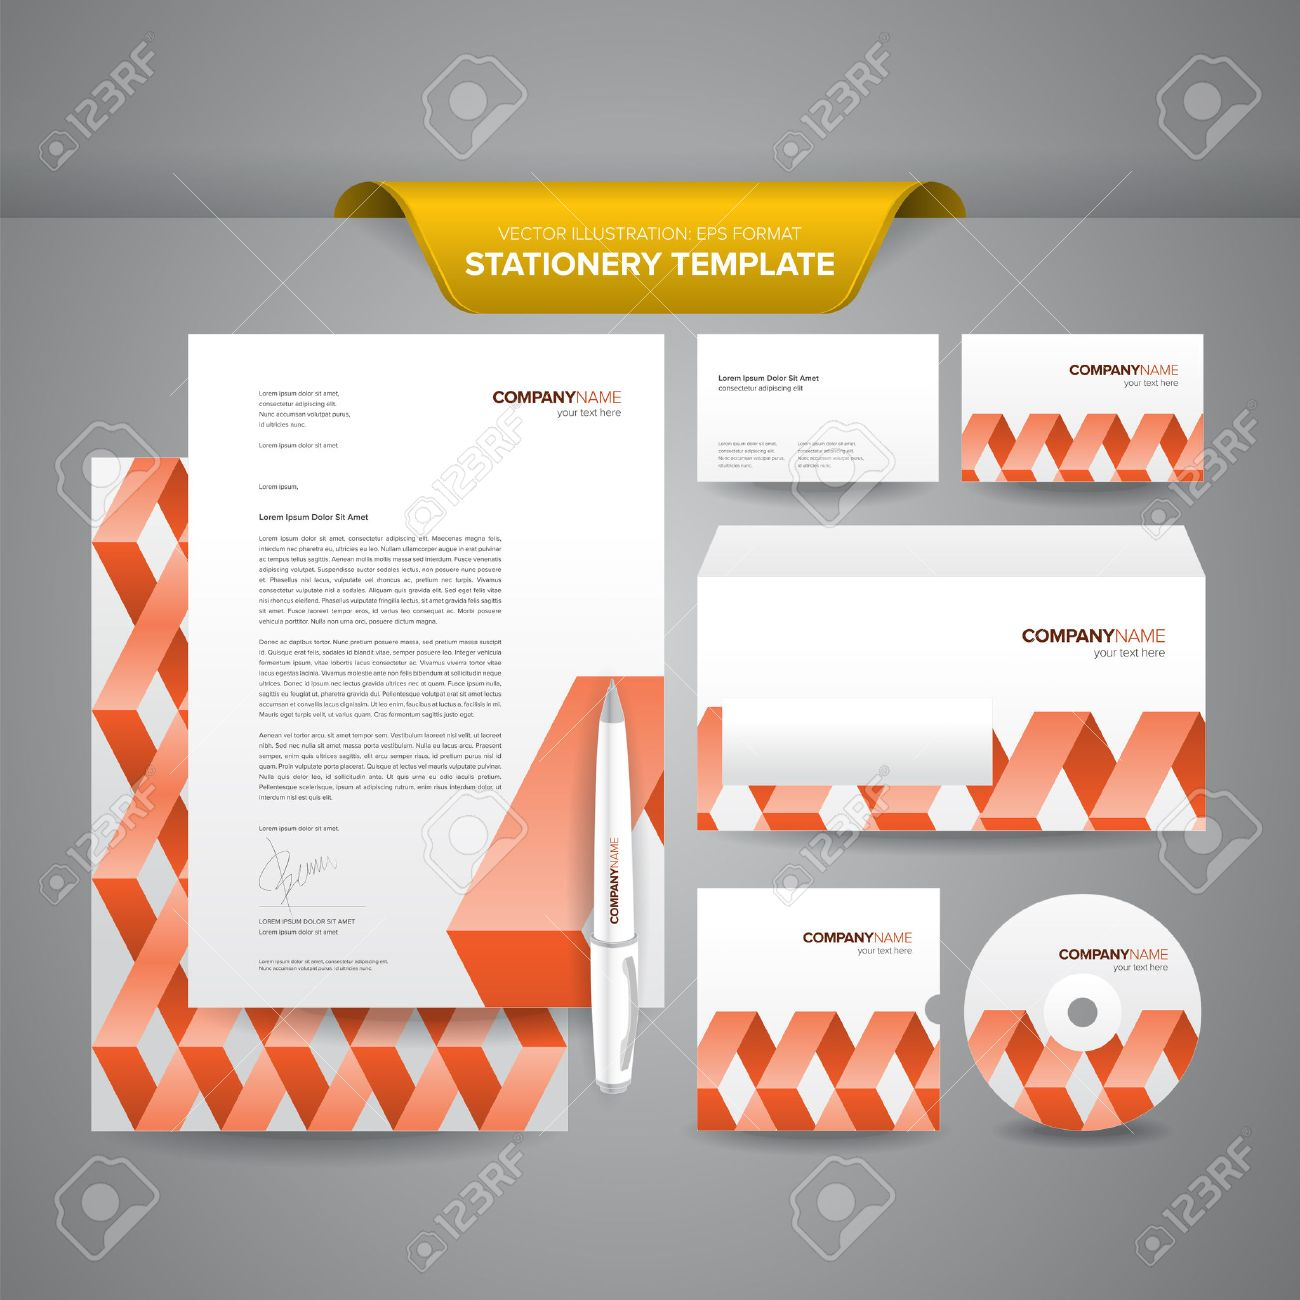 Complete Set Of Business Stationery Templates Such As Letterhead ...